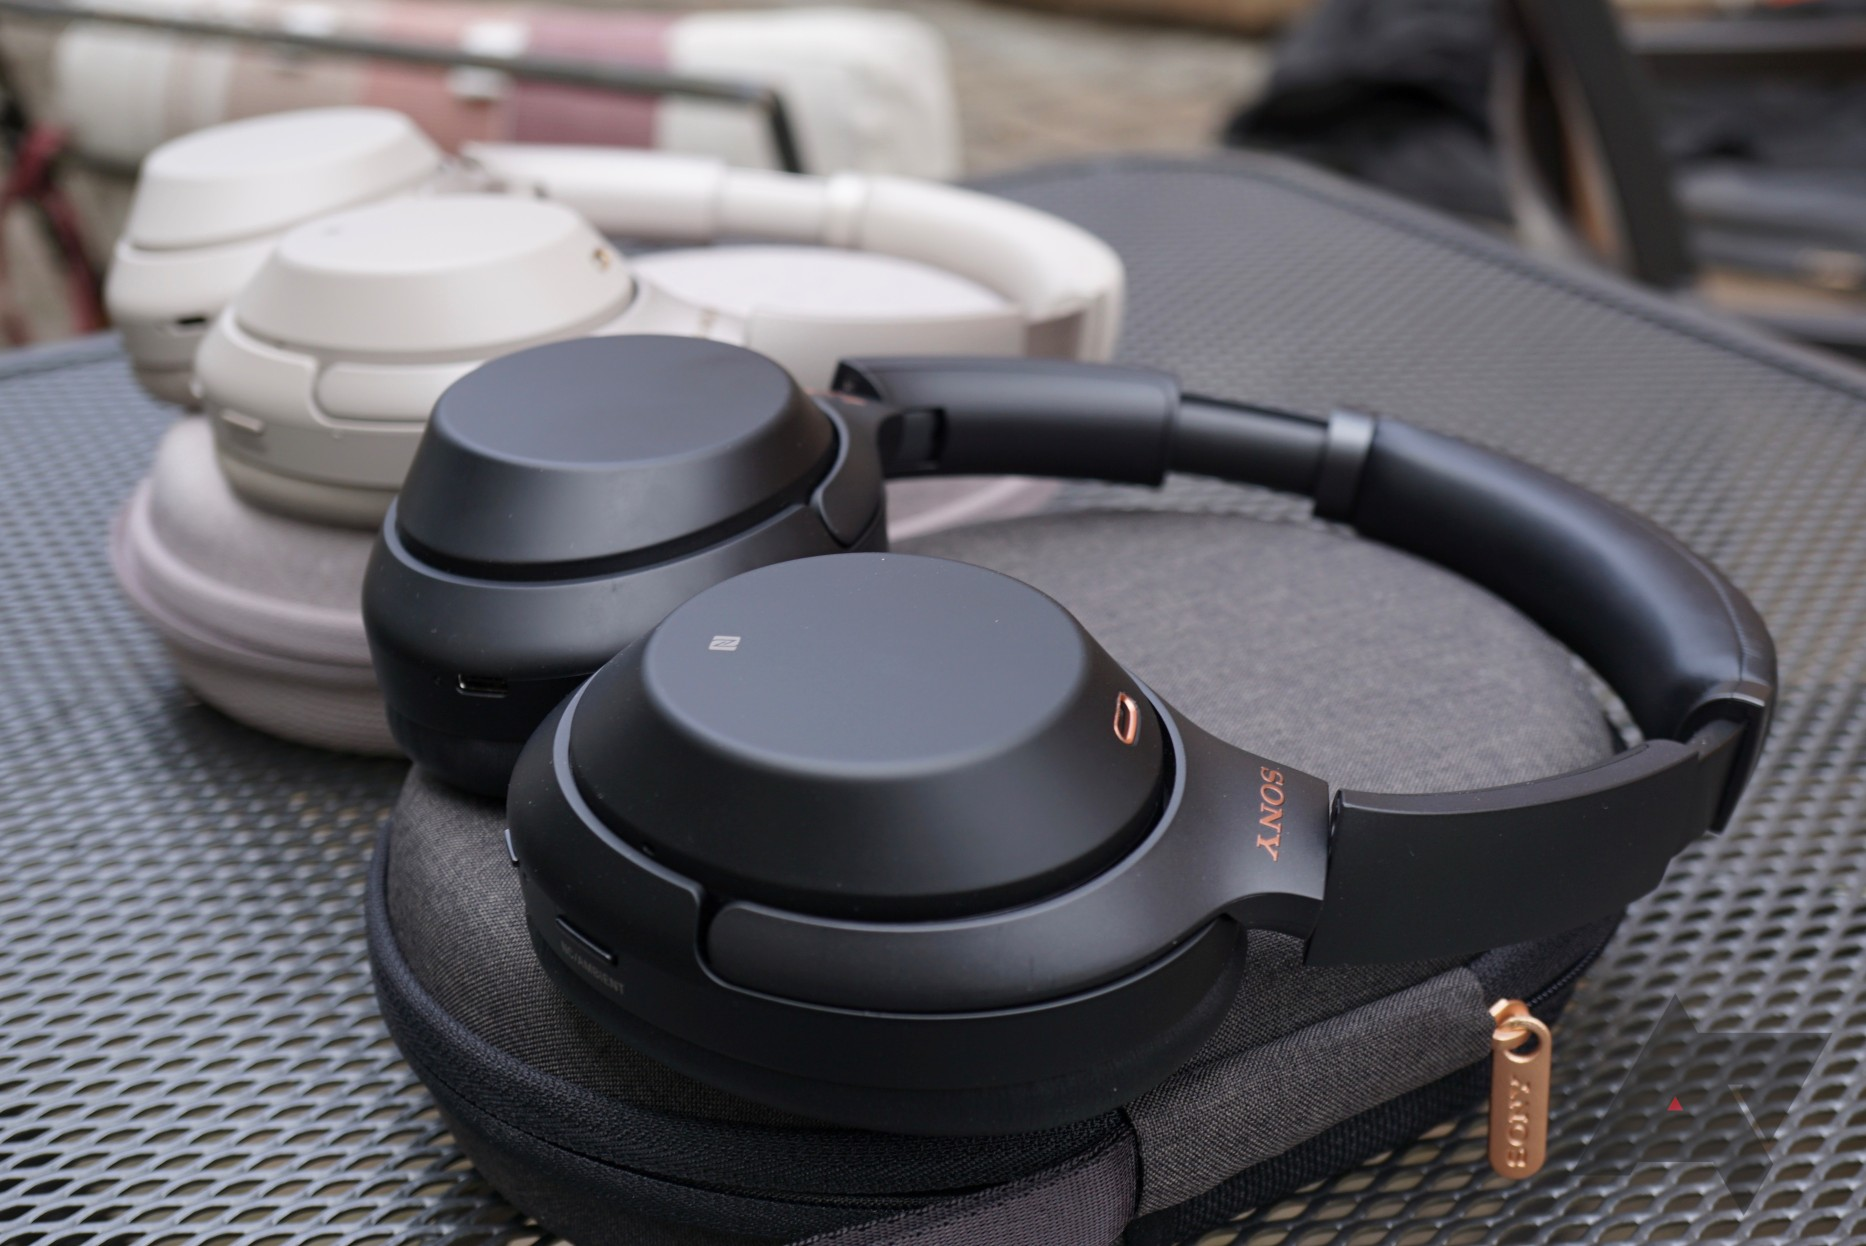 Review: Sony's $350 WH-1000XM3 headphones live up to the hype